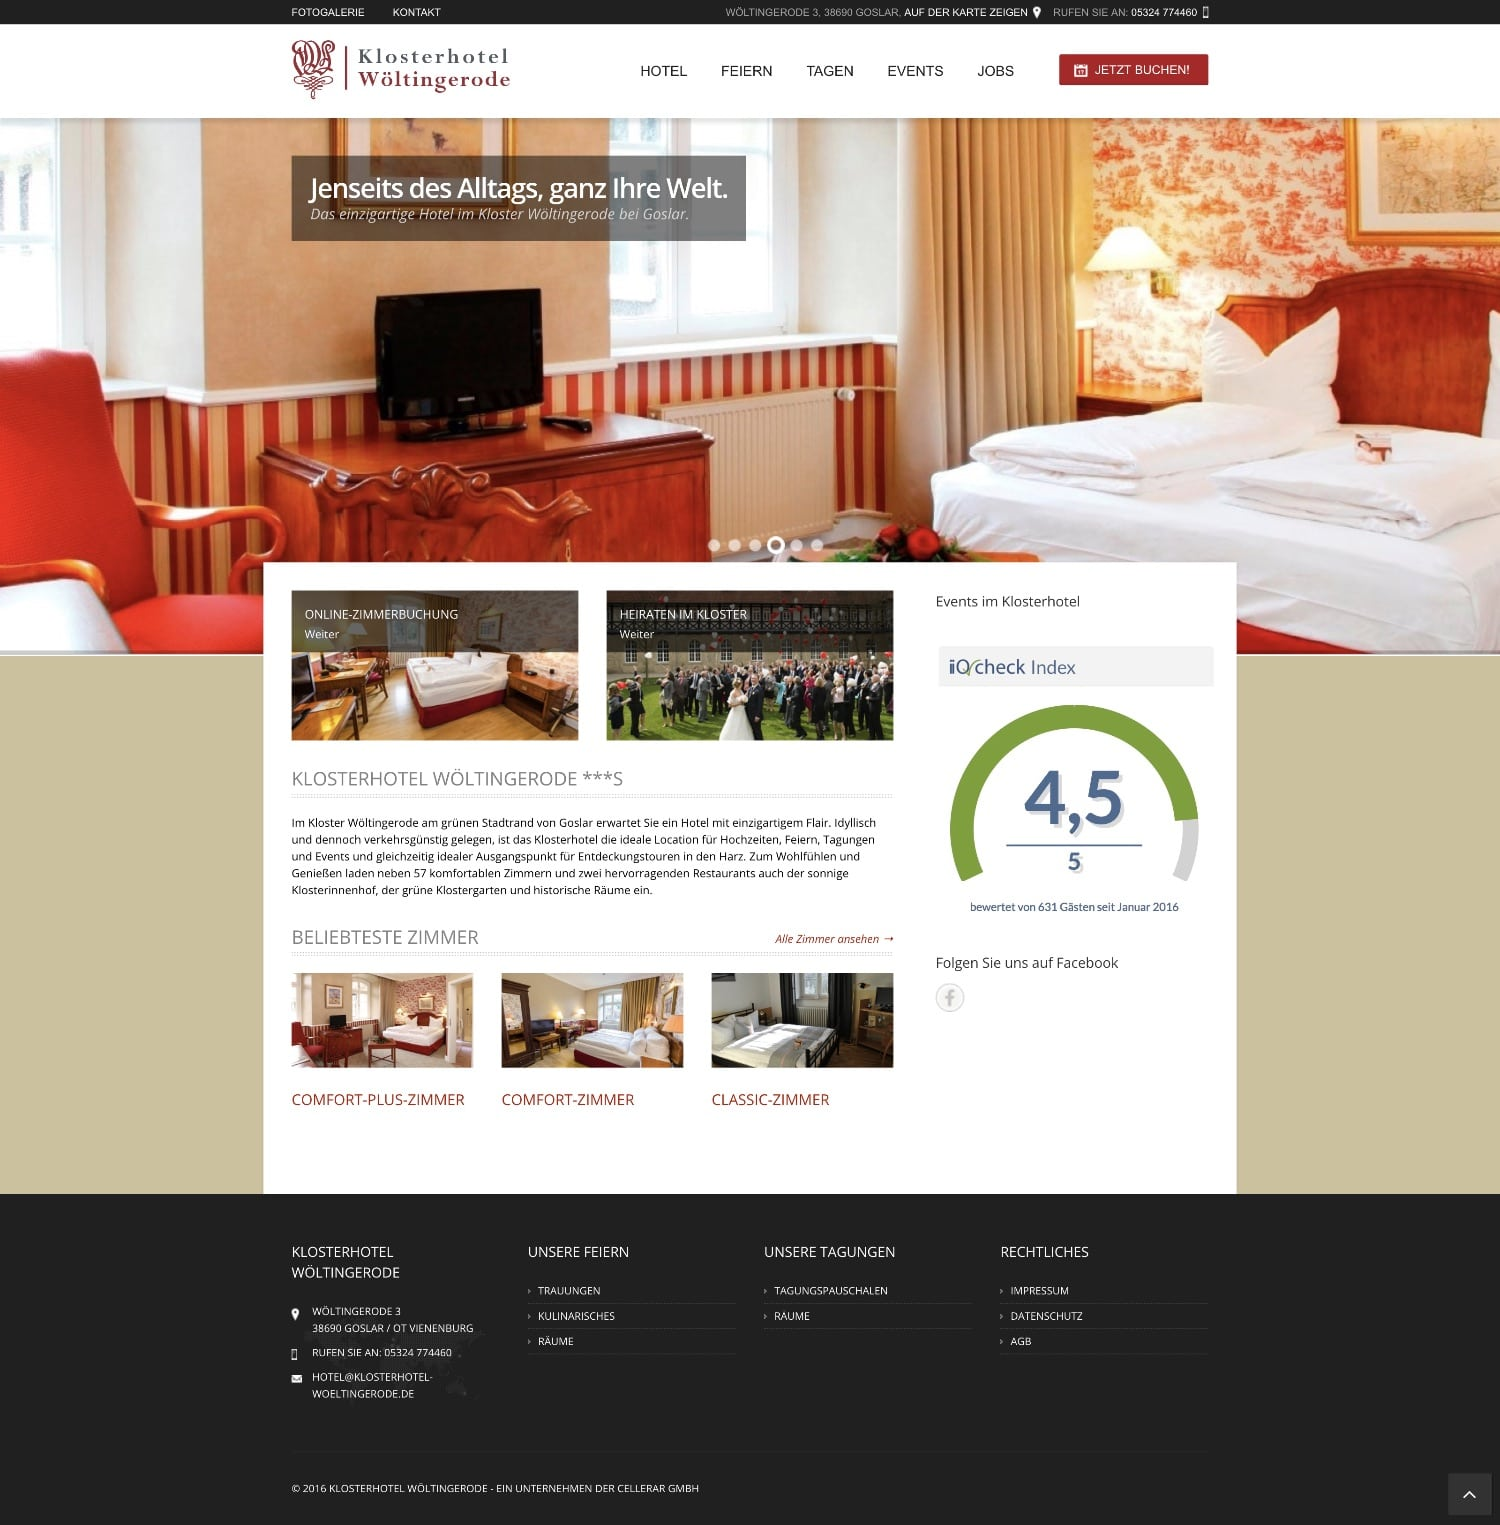 Website Klosterhotel Wöltingerode